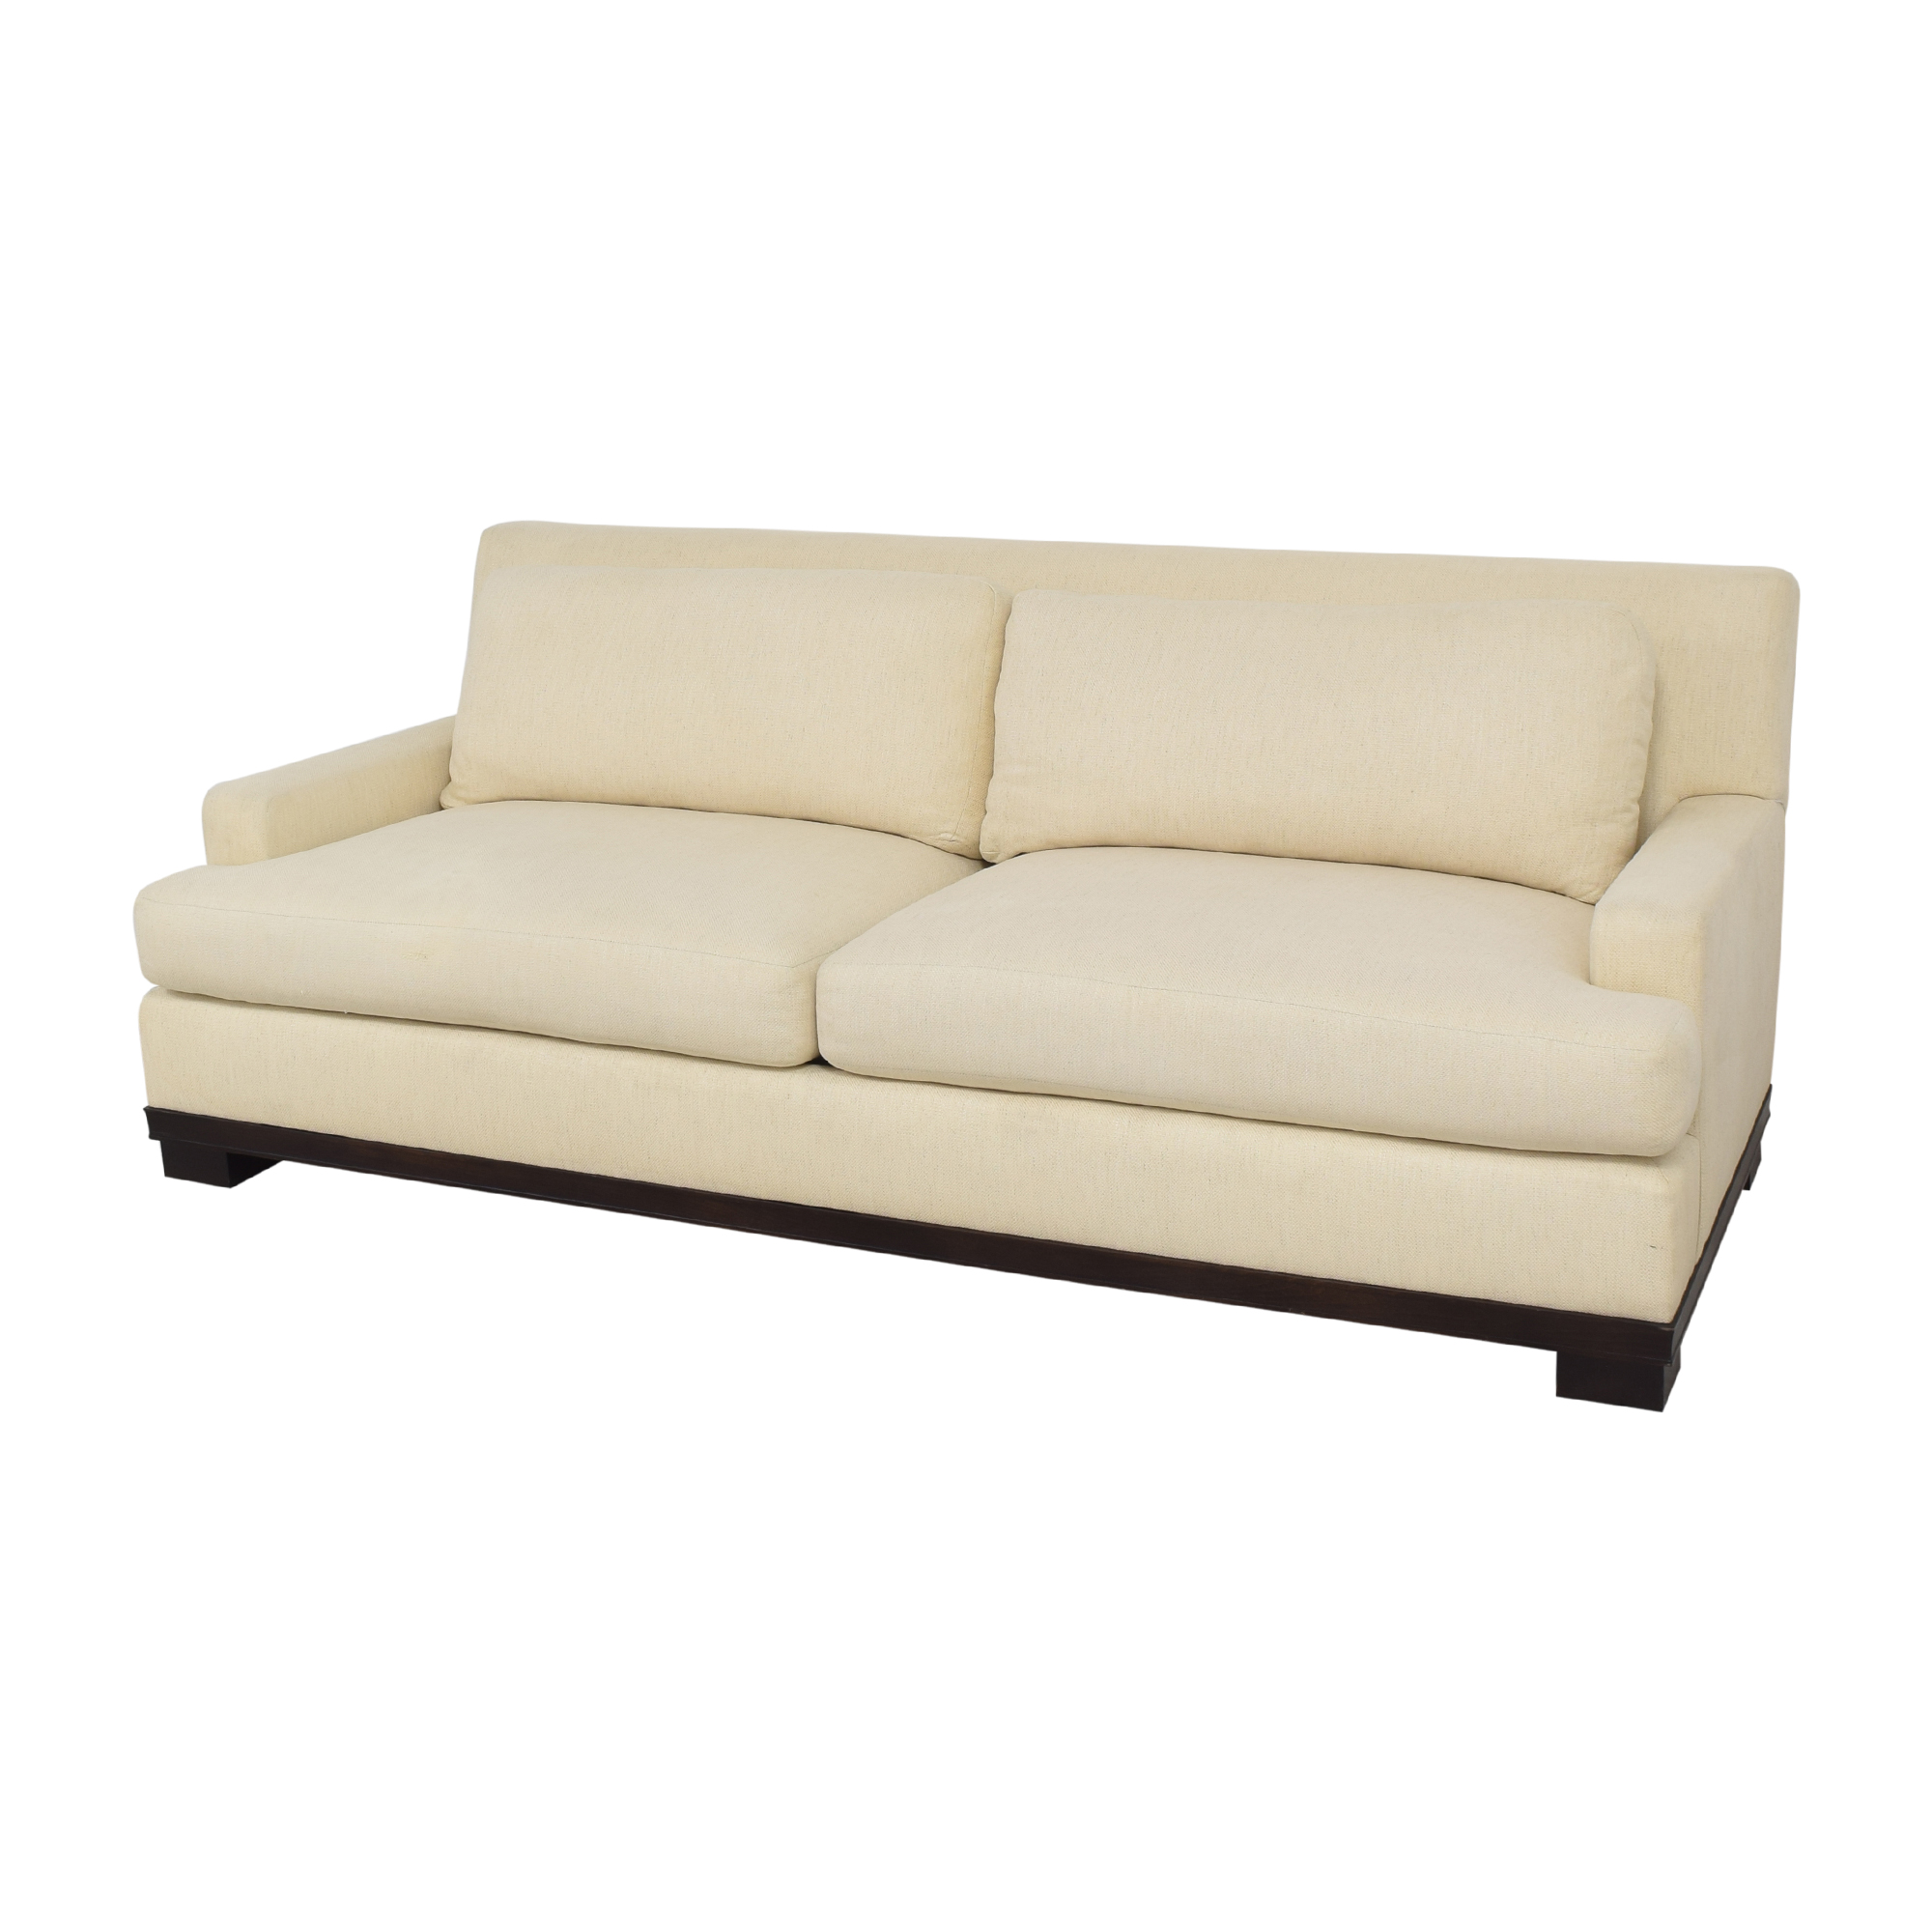 Bloomingdale's Bloomingdale's by Barbara Barry Oval Collection Sofa coupon